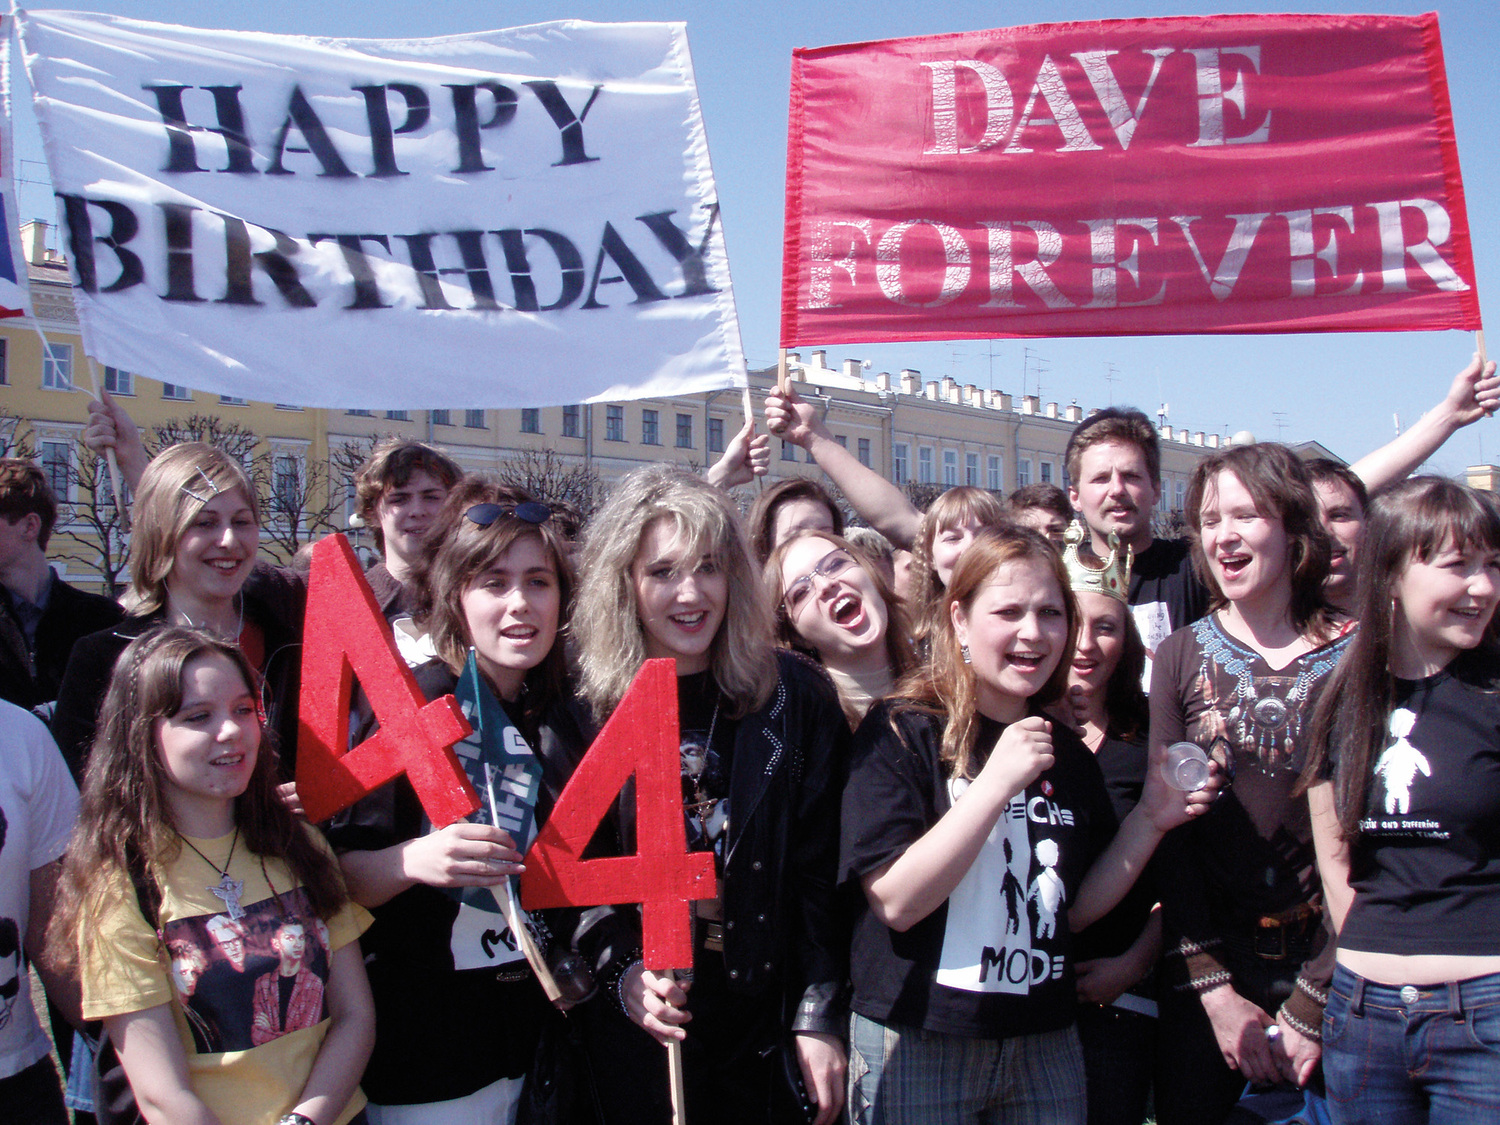 Our Hobby is Depeche Mode, 2006. Depeche Mode fans celebrate 'Dave Day', Moscow, Russia.